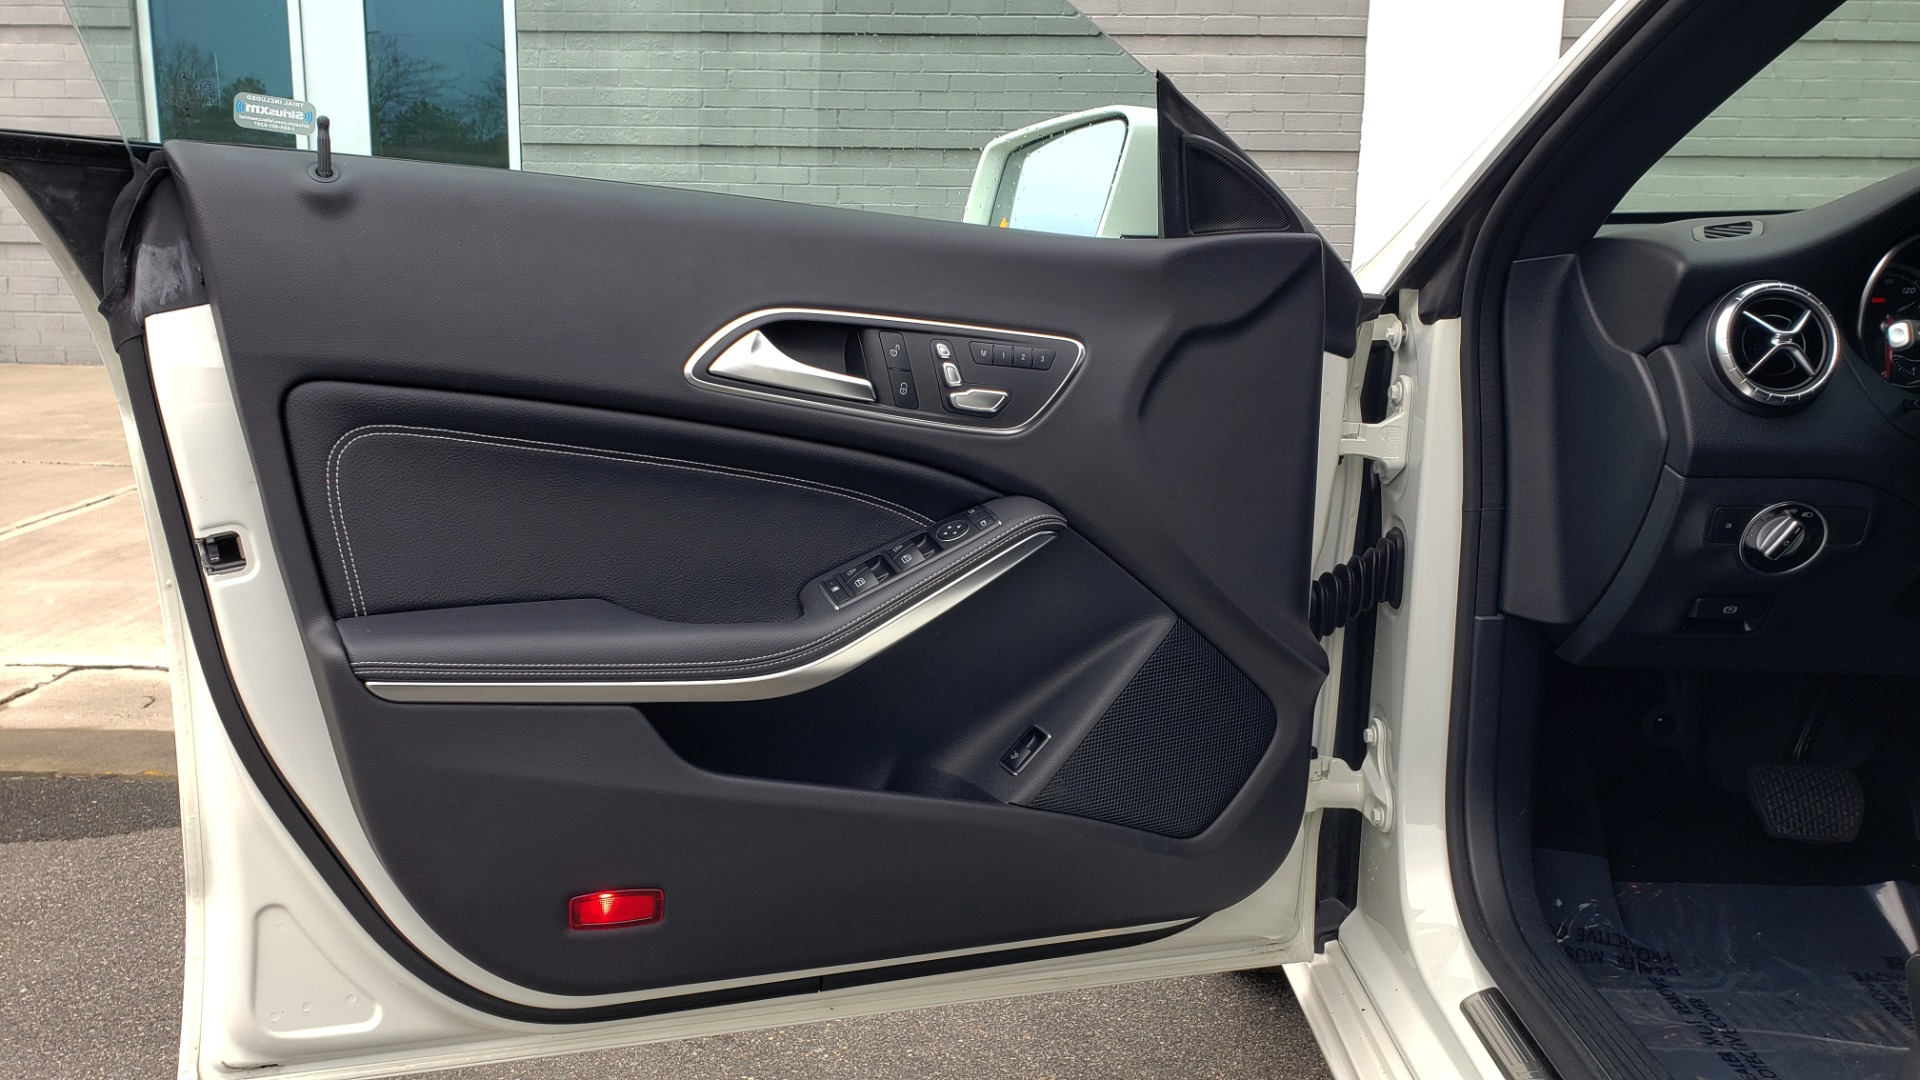 Used 2018 Mercedes-Benz CLA 250 PREMIUM / NAV / PANO-ROOF / APPLE CARPLAY / REARVIEW for sale $23,995 at Formula Imports in Charlotte NC 28227 29